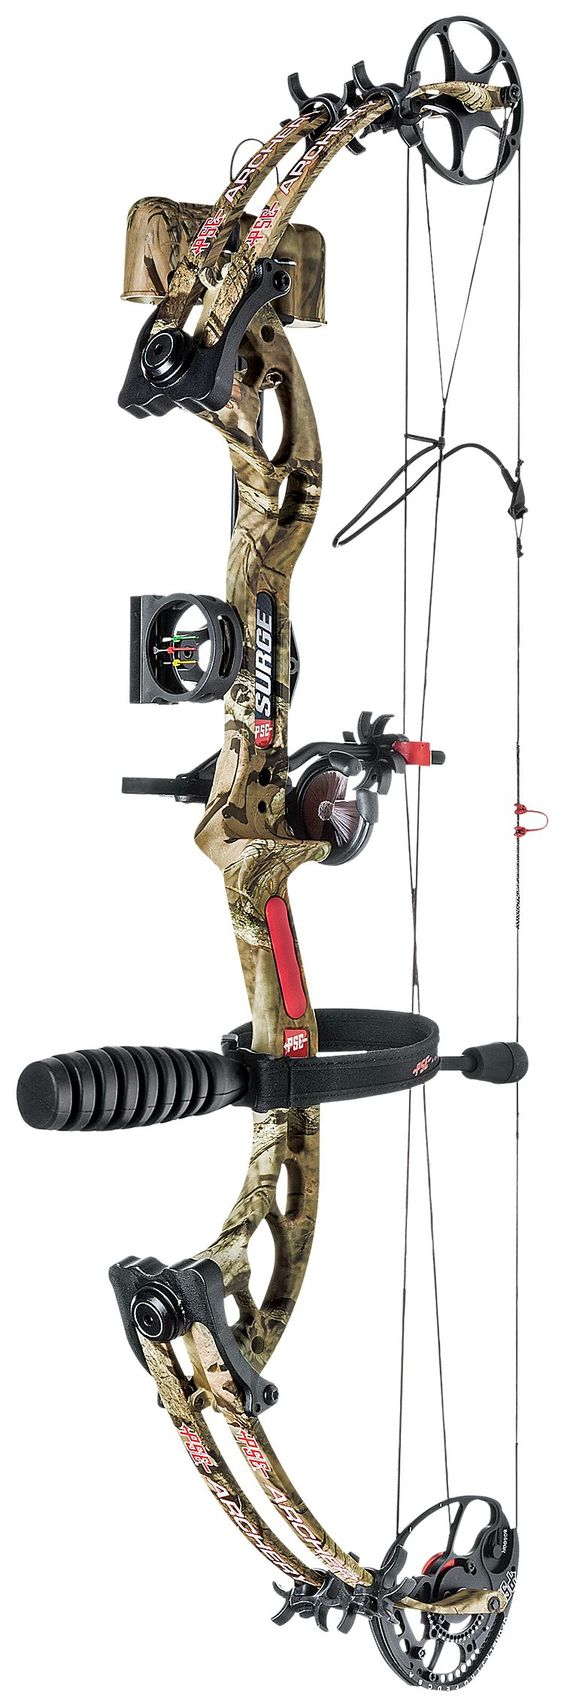 PSE Archery Surge Compound Bow RTS (Ready To Shoot) Package | Bass Pro Shops